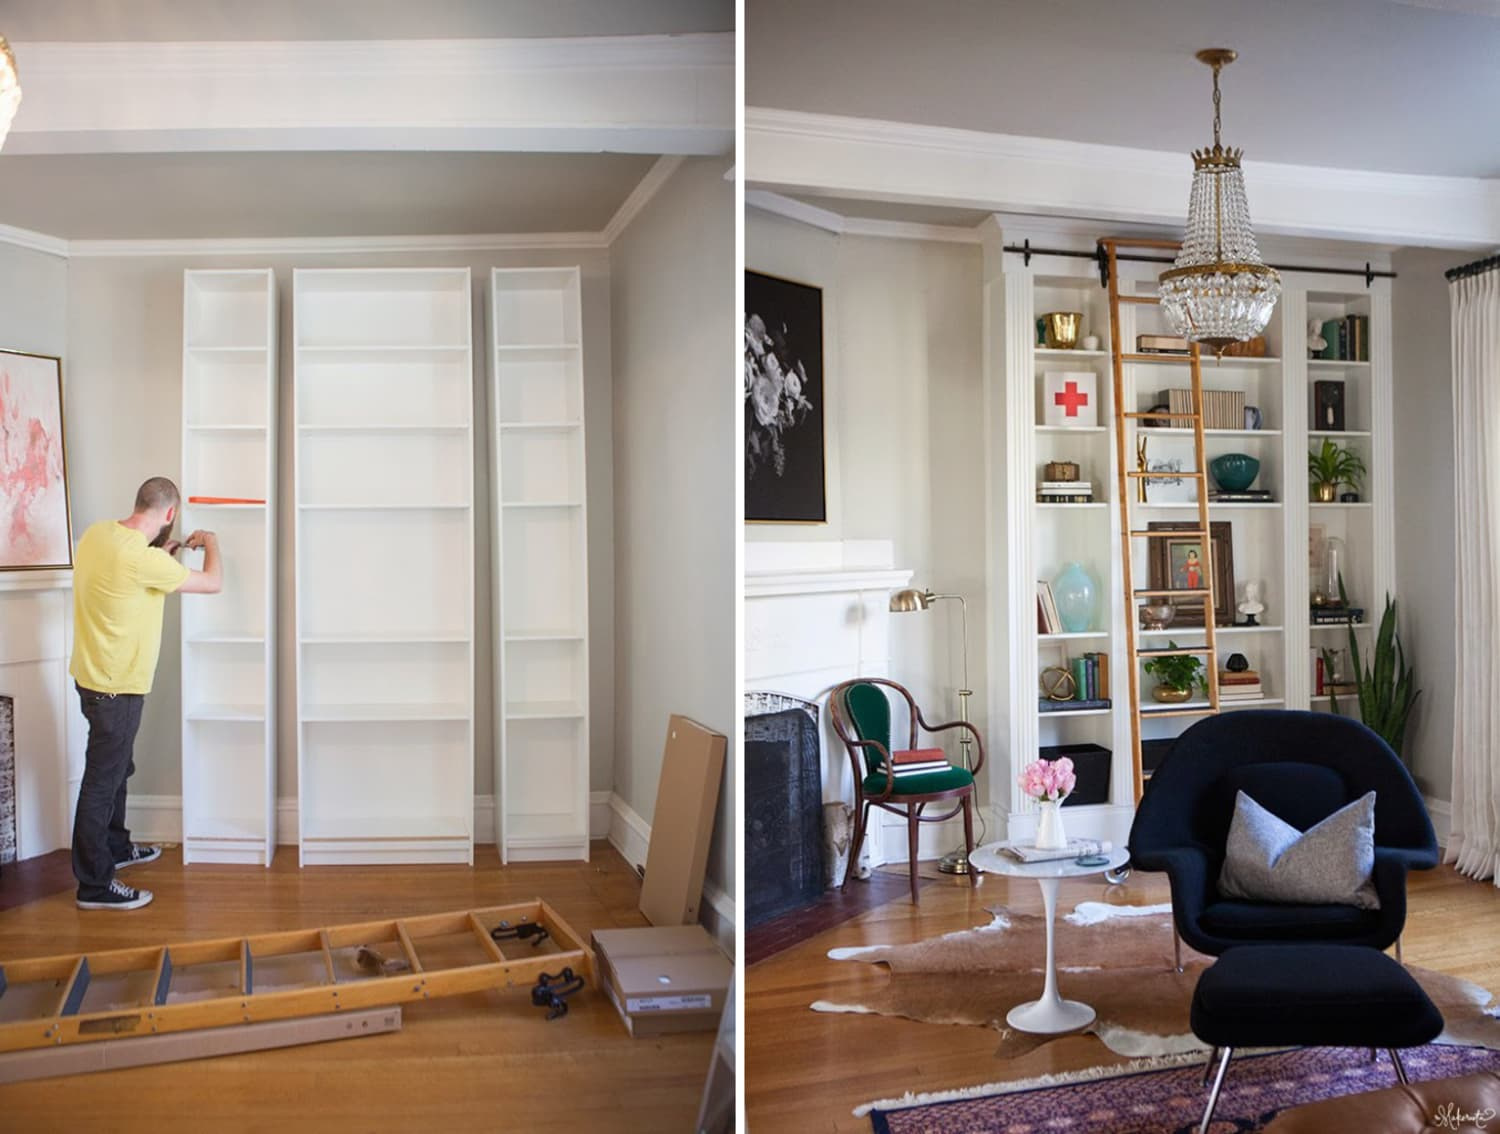 Smart Hacks: 7 Ways to Add More Storage in the Living Room